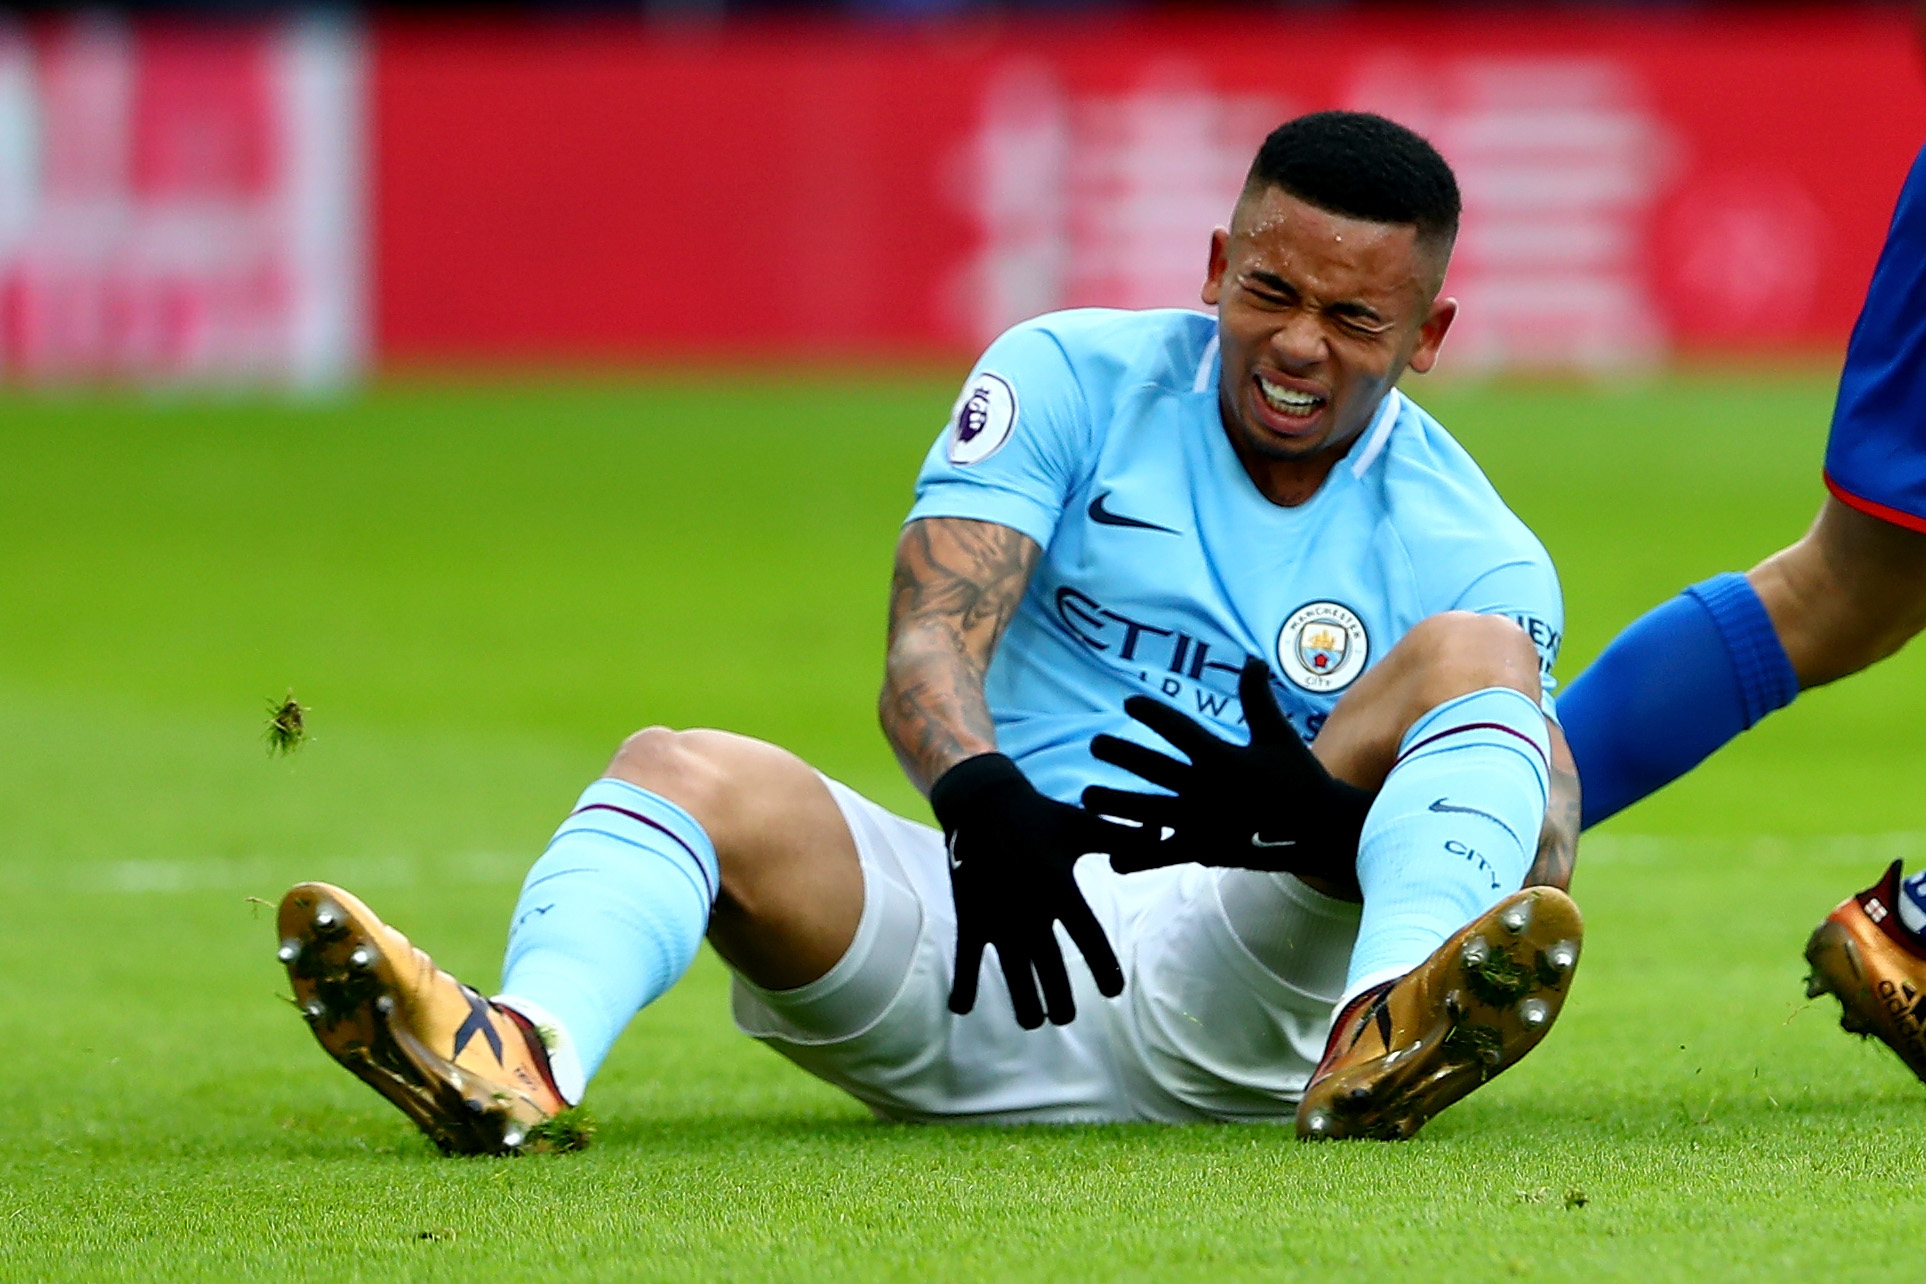 Gabriel Jesus was injured at Crystal Palace on December 31.